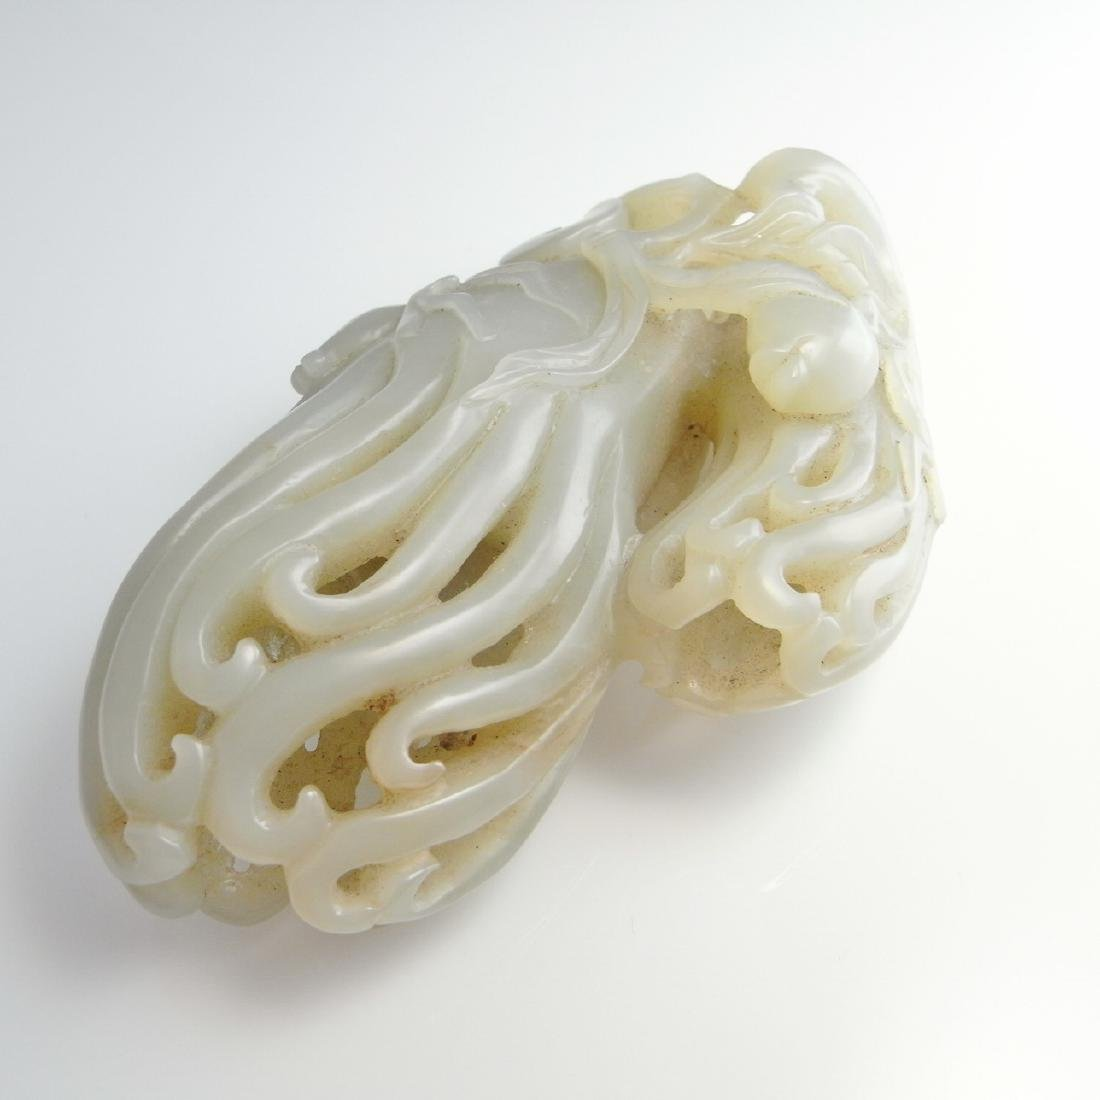 ANTIQUE BUDDHAS HAND CITRON JADE ORNAMENT CARVING